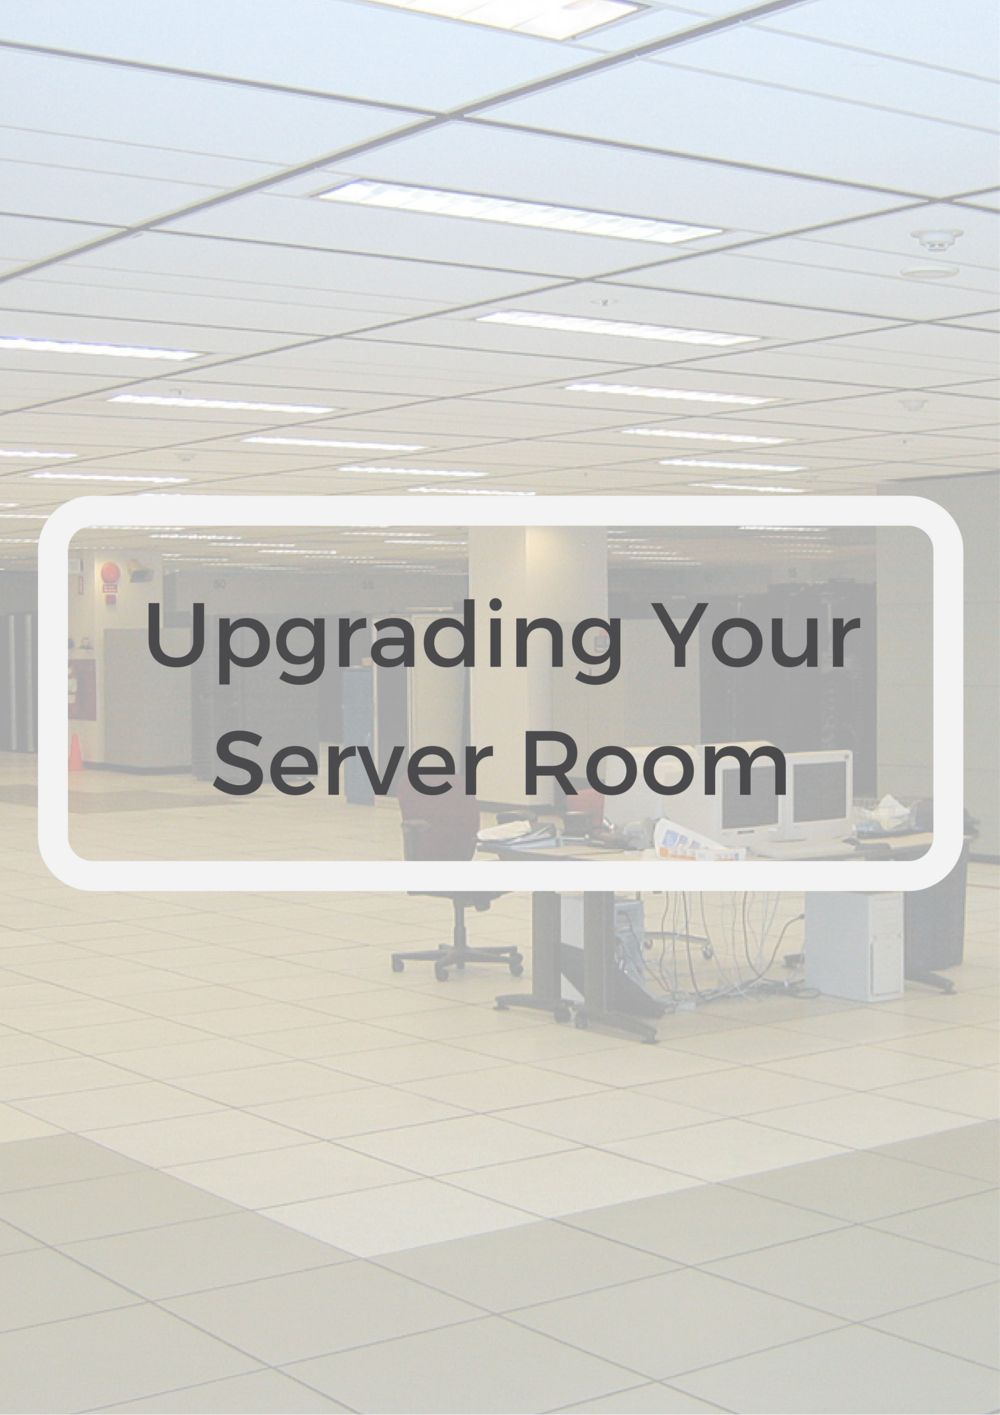 Upgrading-Your-Server-Room-Images.png